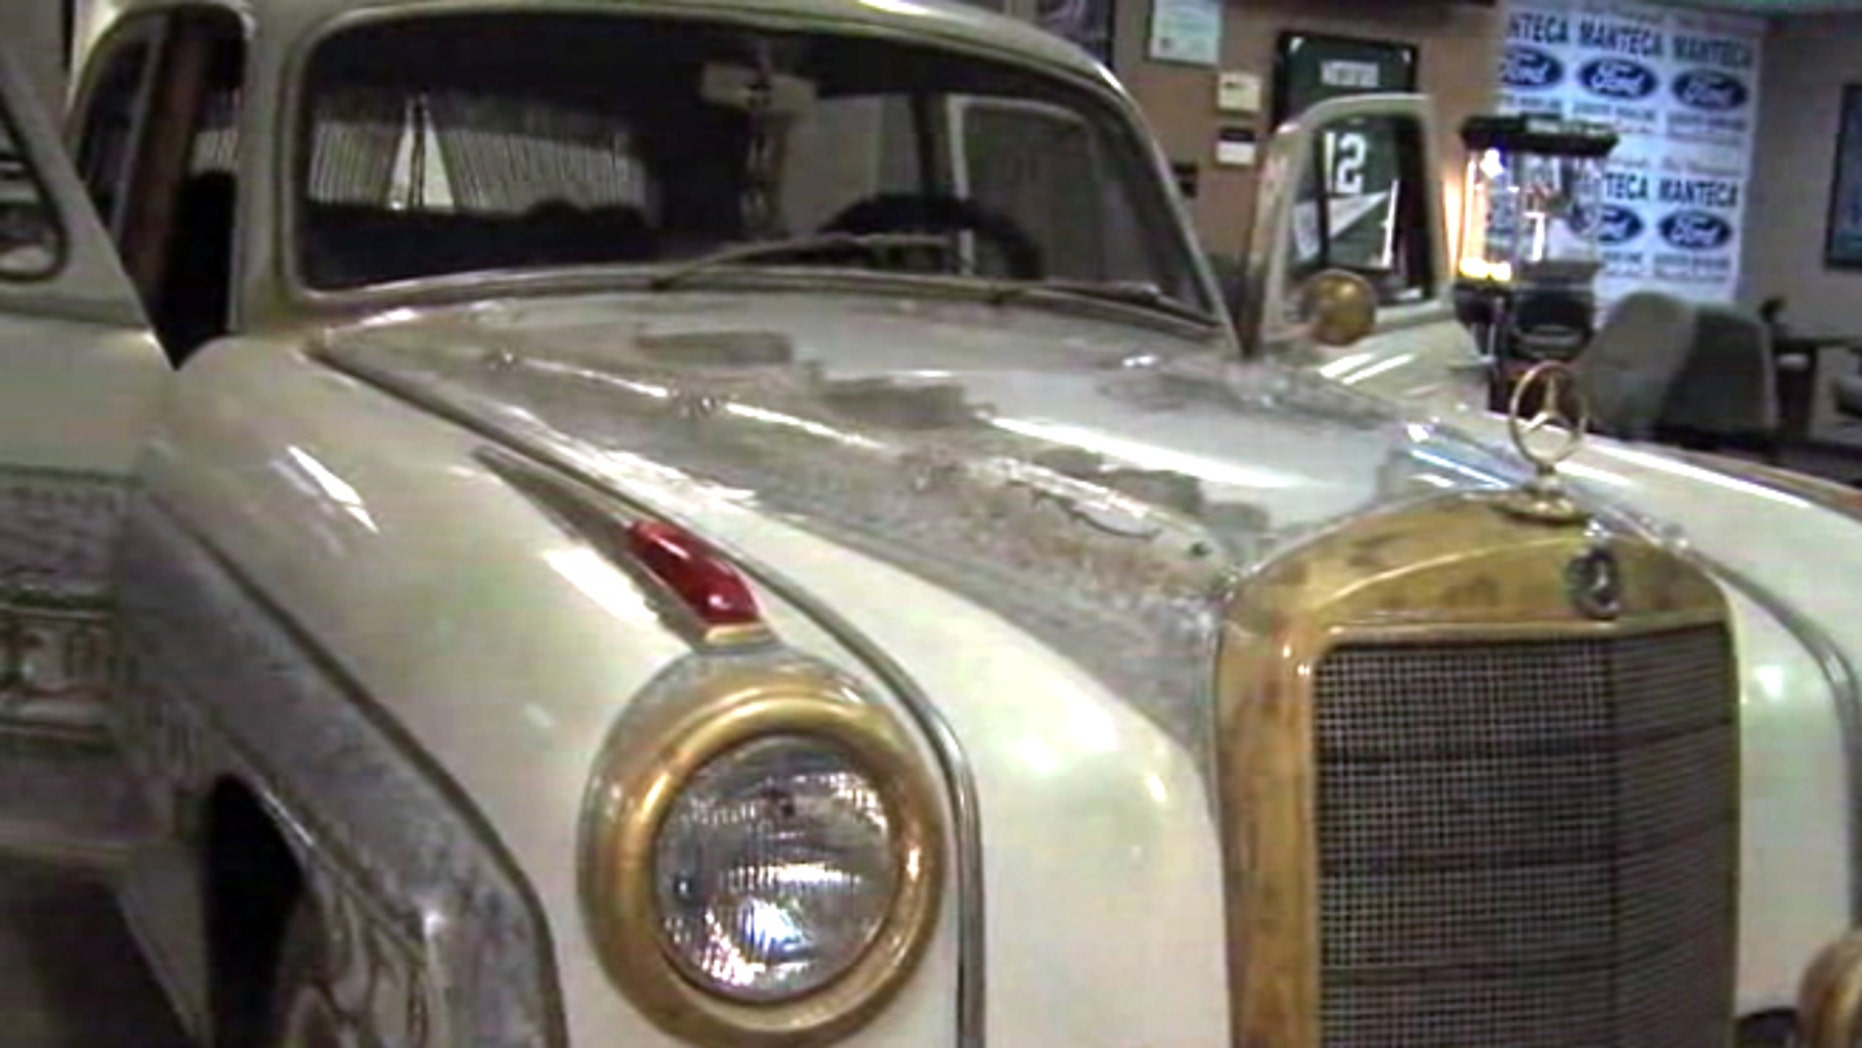 This 1959 Mercedes Benz once belonged to Muhammad Ali.